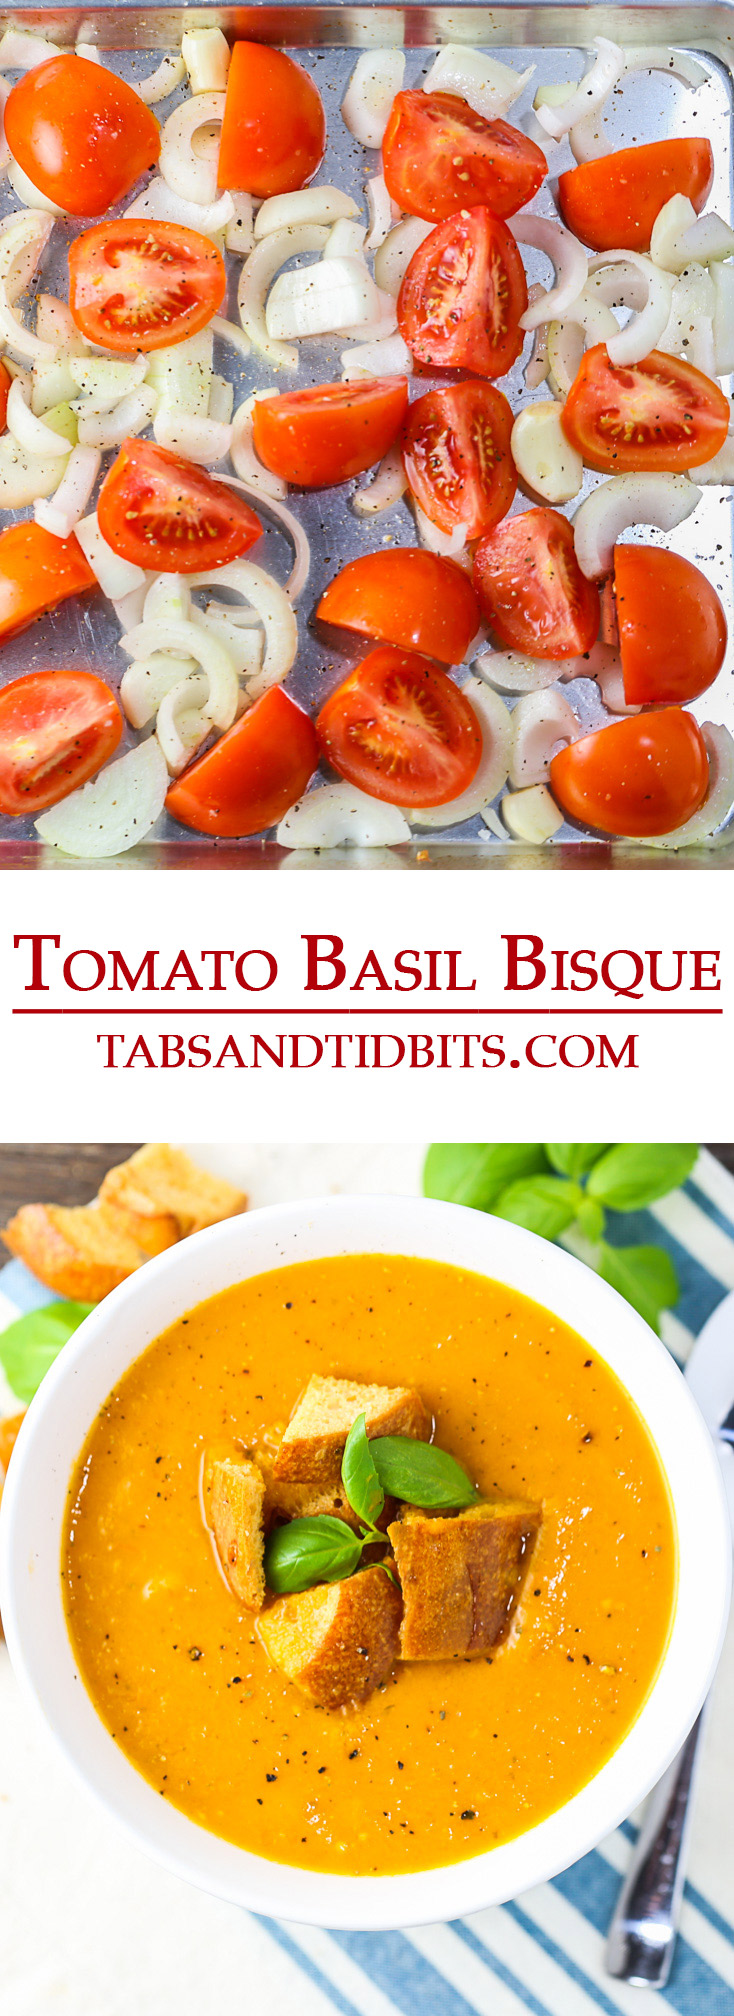 Fresh roasted tomatoes, onions and garlic are simmered together and blended with fresh basil, creating this delicious and creamy vegan Tomato Basil Bisque!